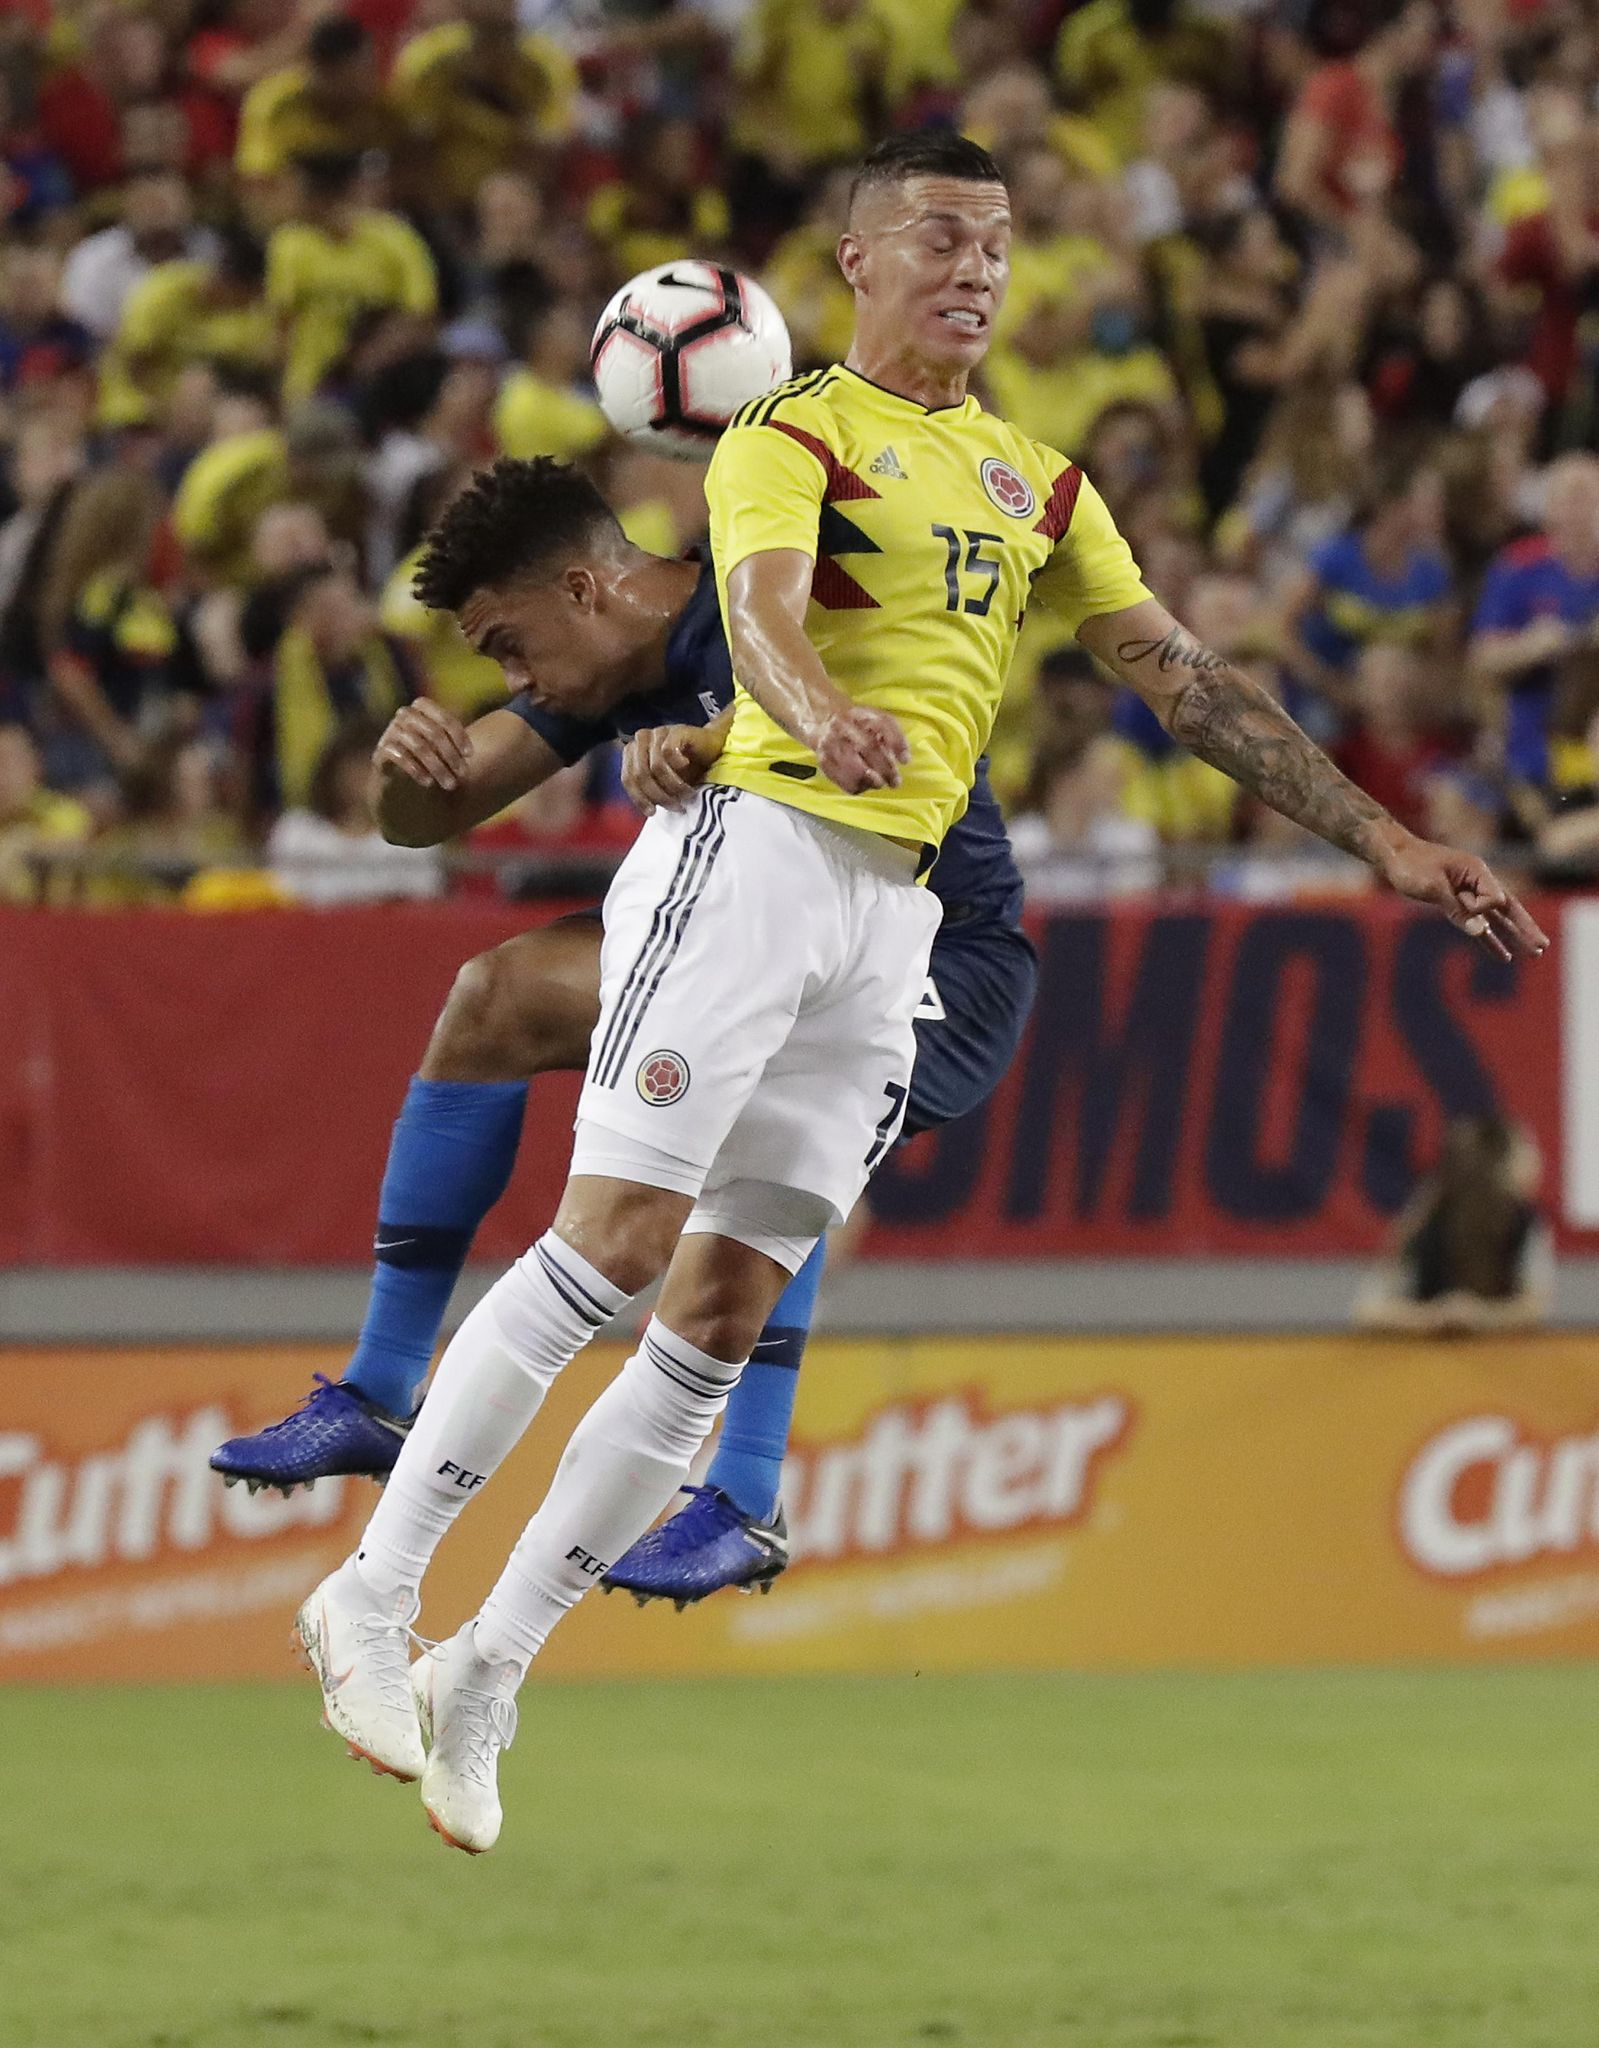 Colombia_us_soccer_76486_s1599x2048